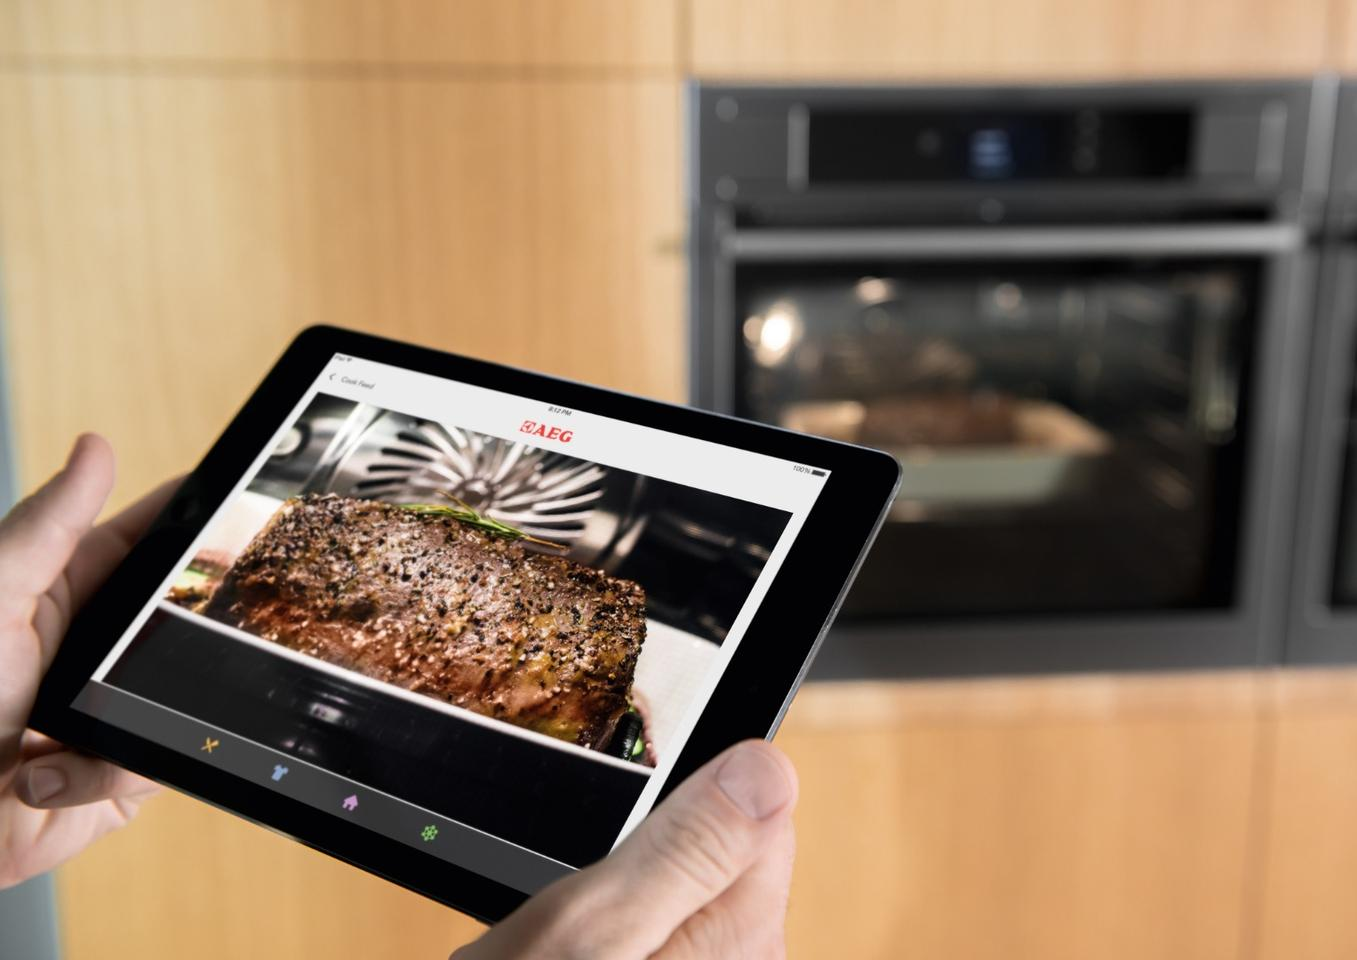 AEG is making use of camera technology to allow home chef's a live feed view of what's cooking in its ProCombi Plus Smart oven